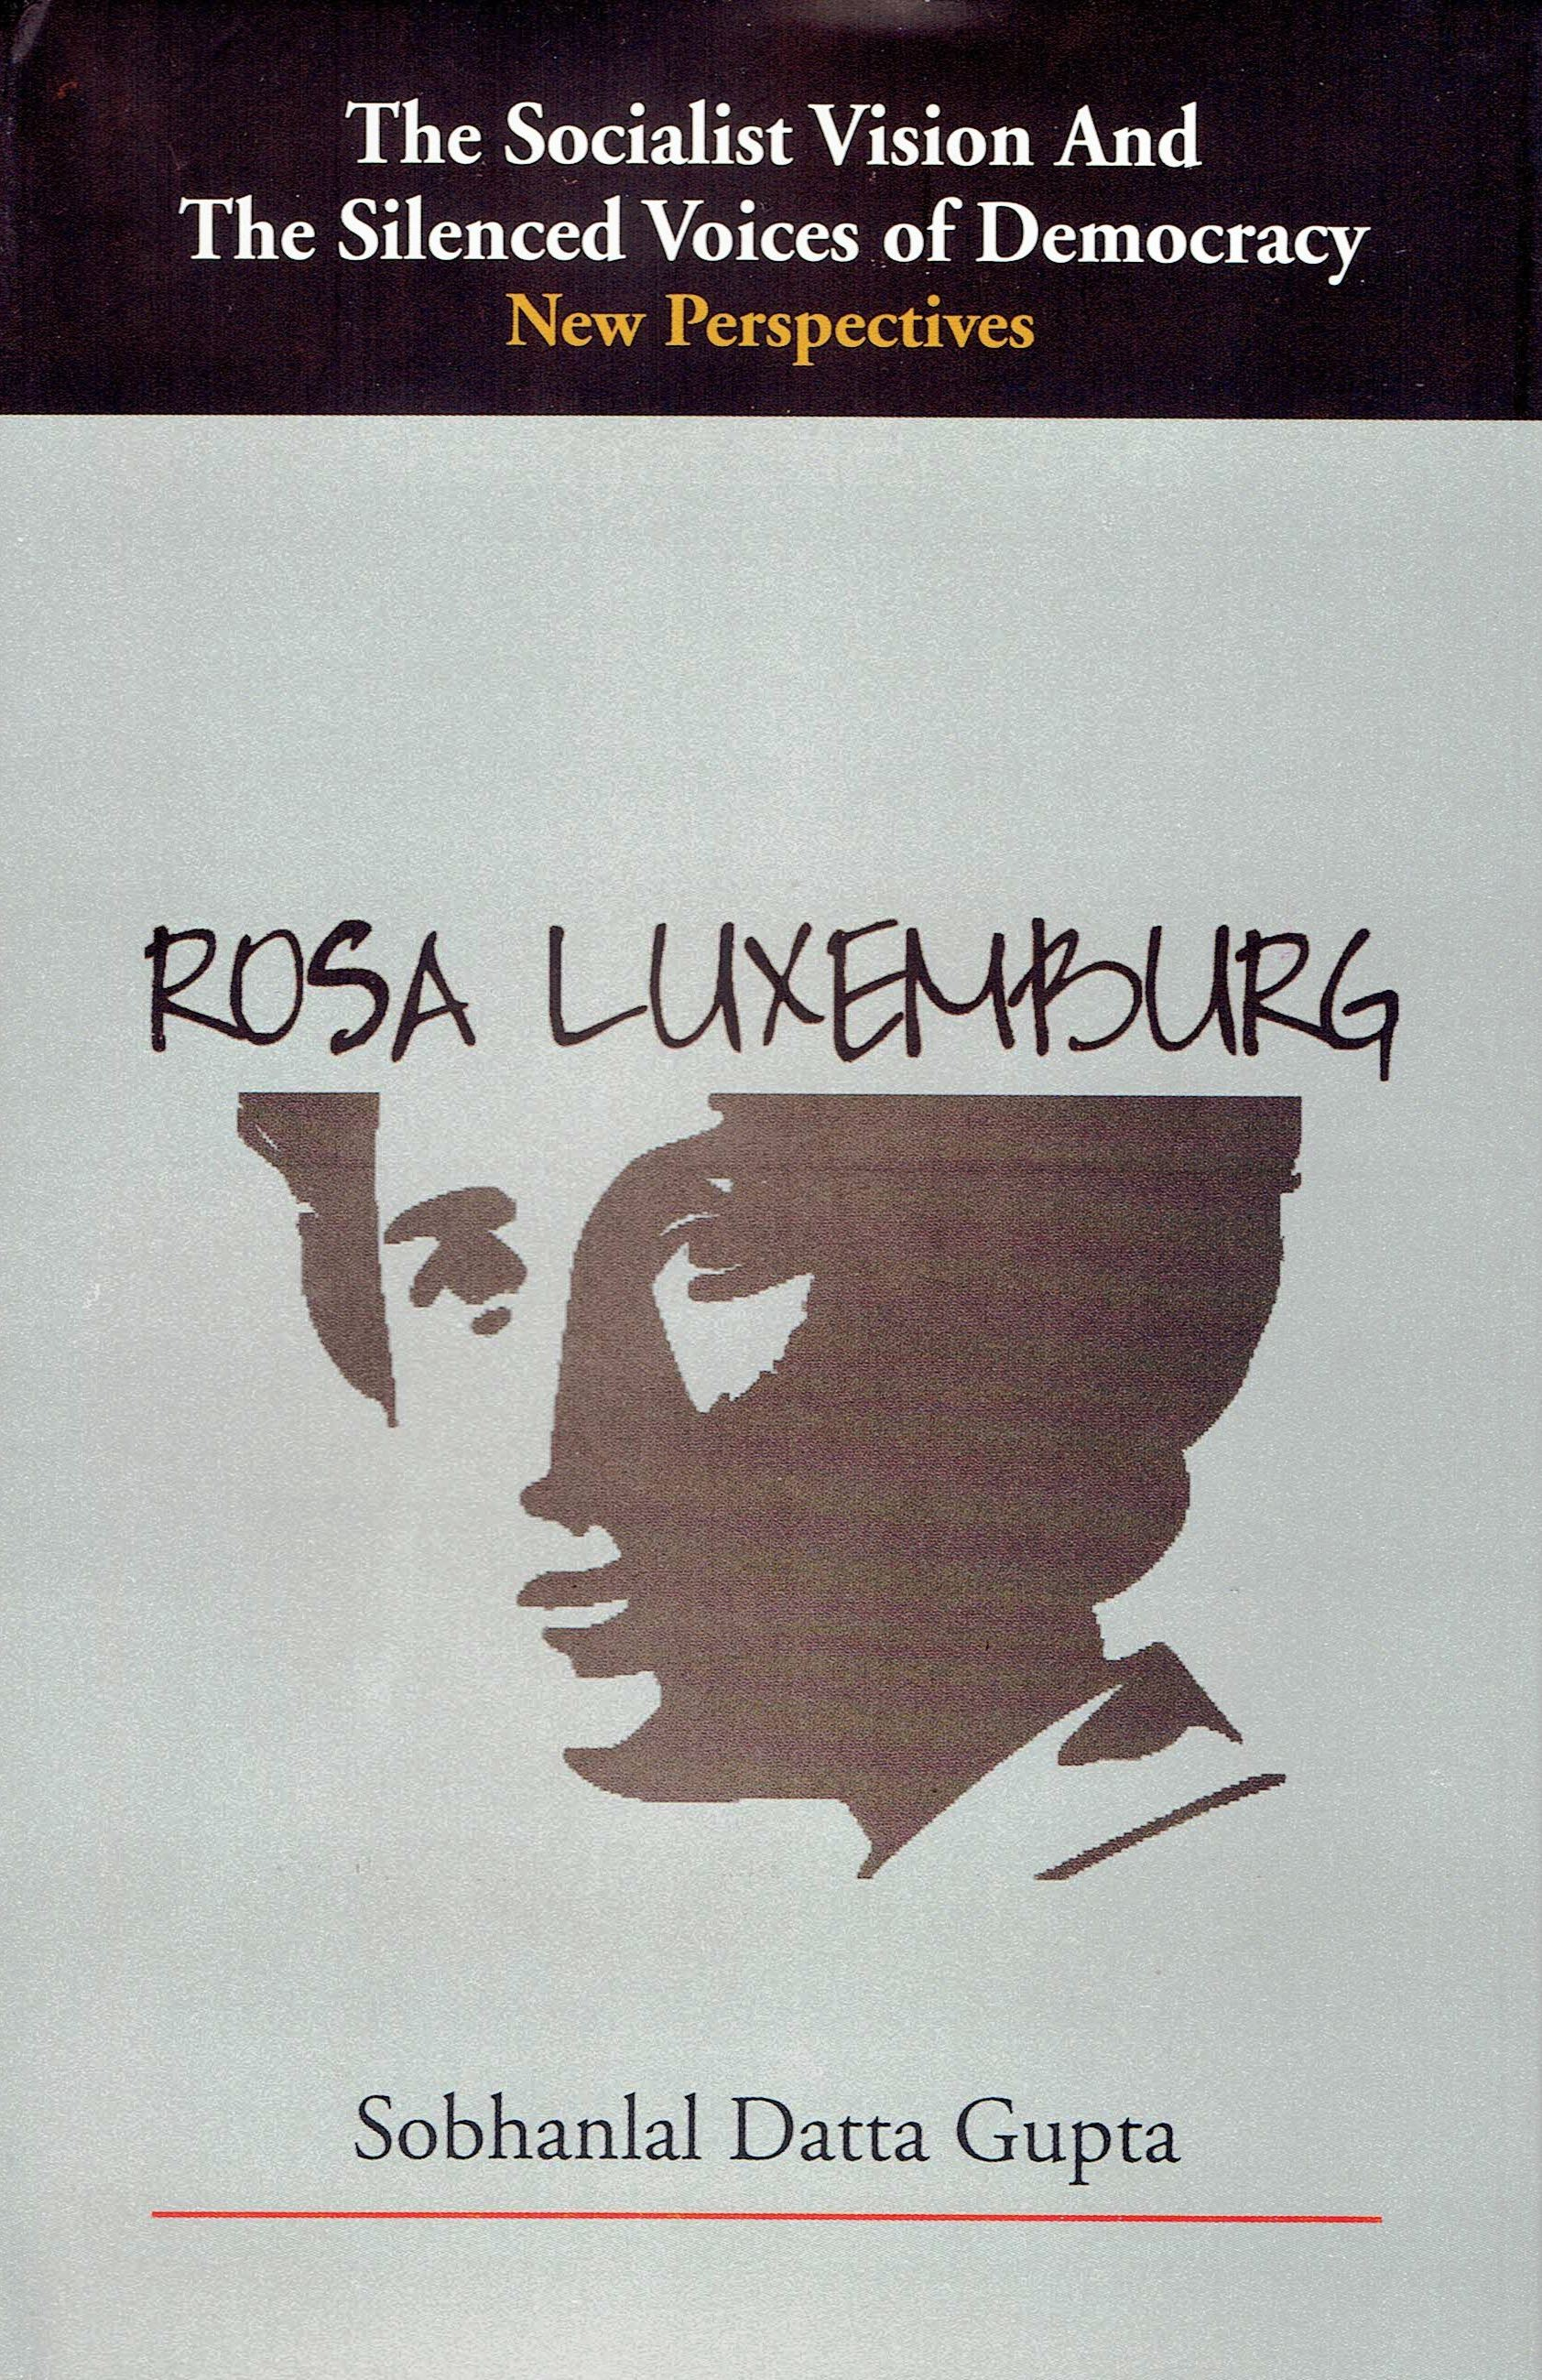 The Socialist Vision And The Silenced Voices of Democracy- New Perspectives - : ROSA LUXEMBURG